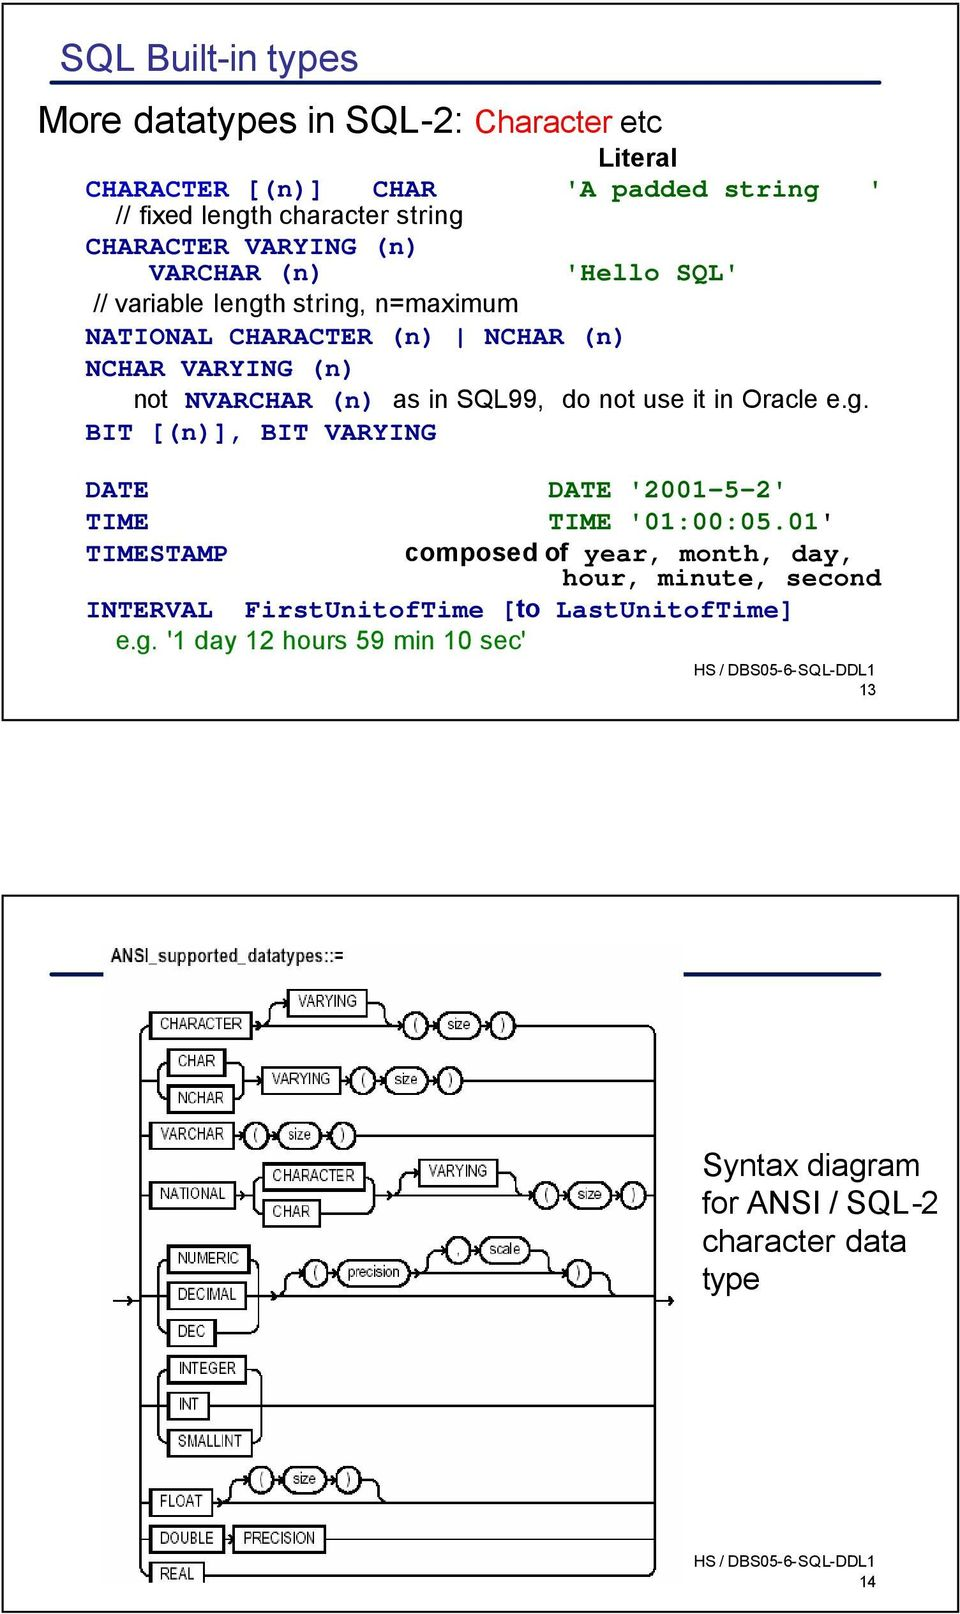 SQL99, do not use it in Oracle e.g. BIT [(n)], BIT VARYING DATE TIME TIMESTAMP DATE '2001-5-2' TIME '01:00:05.